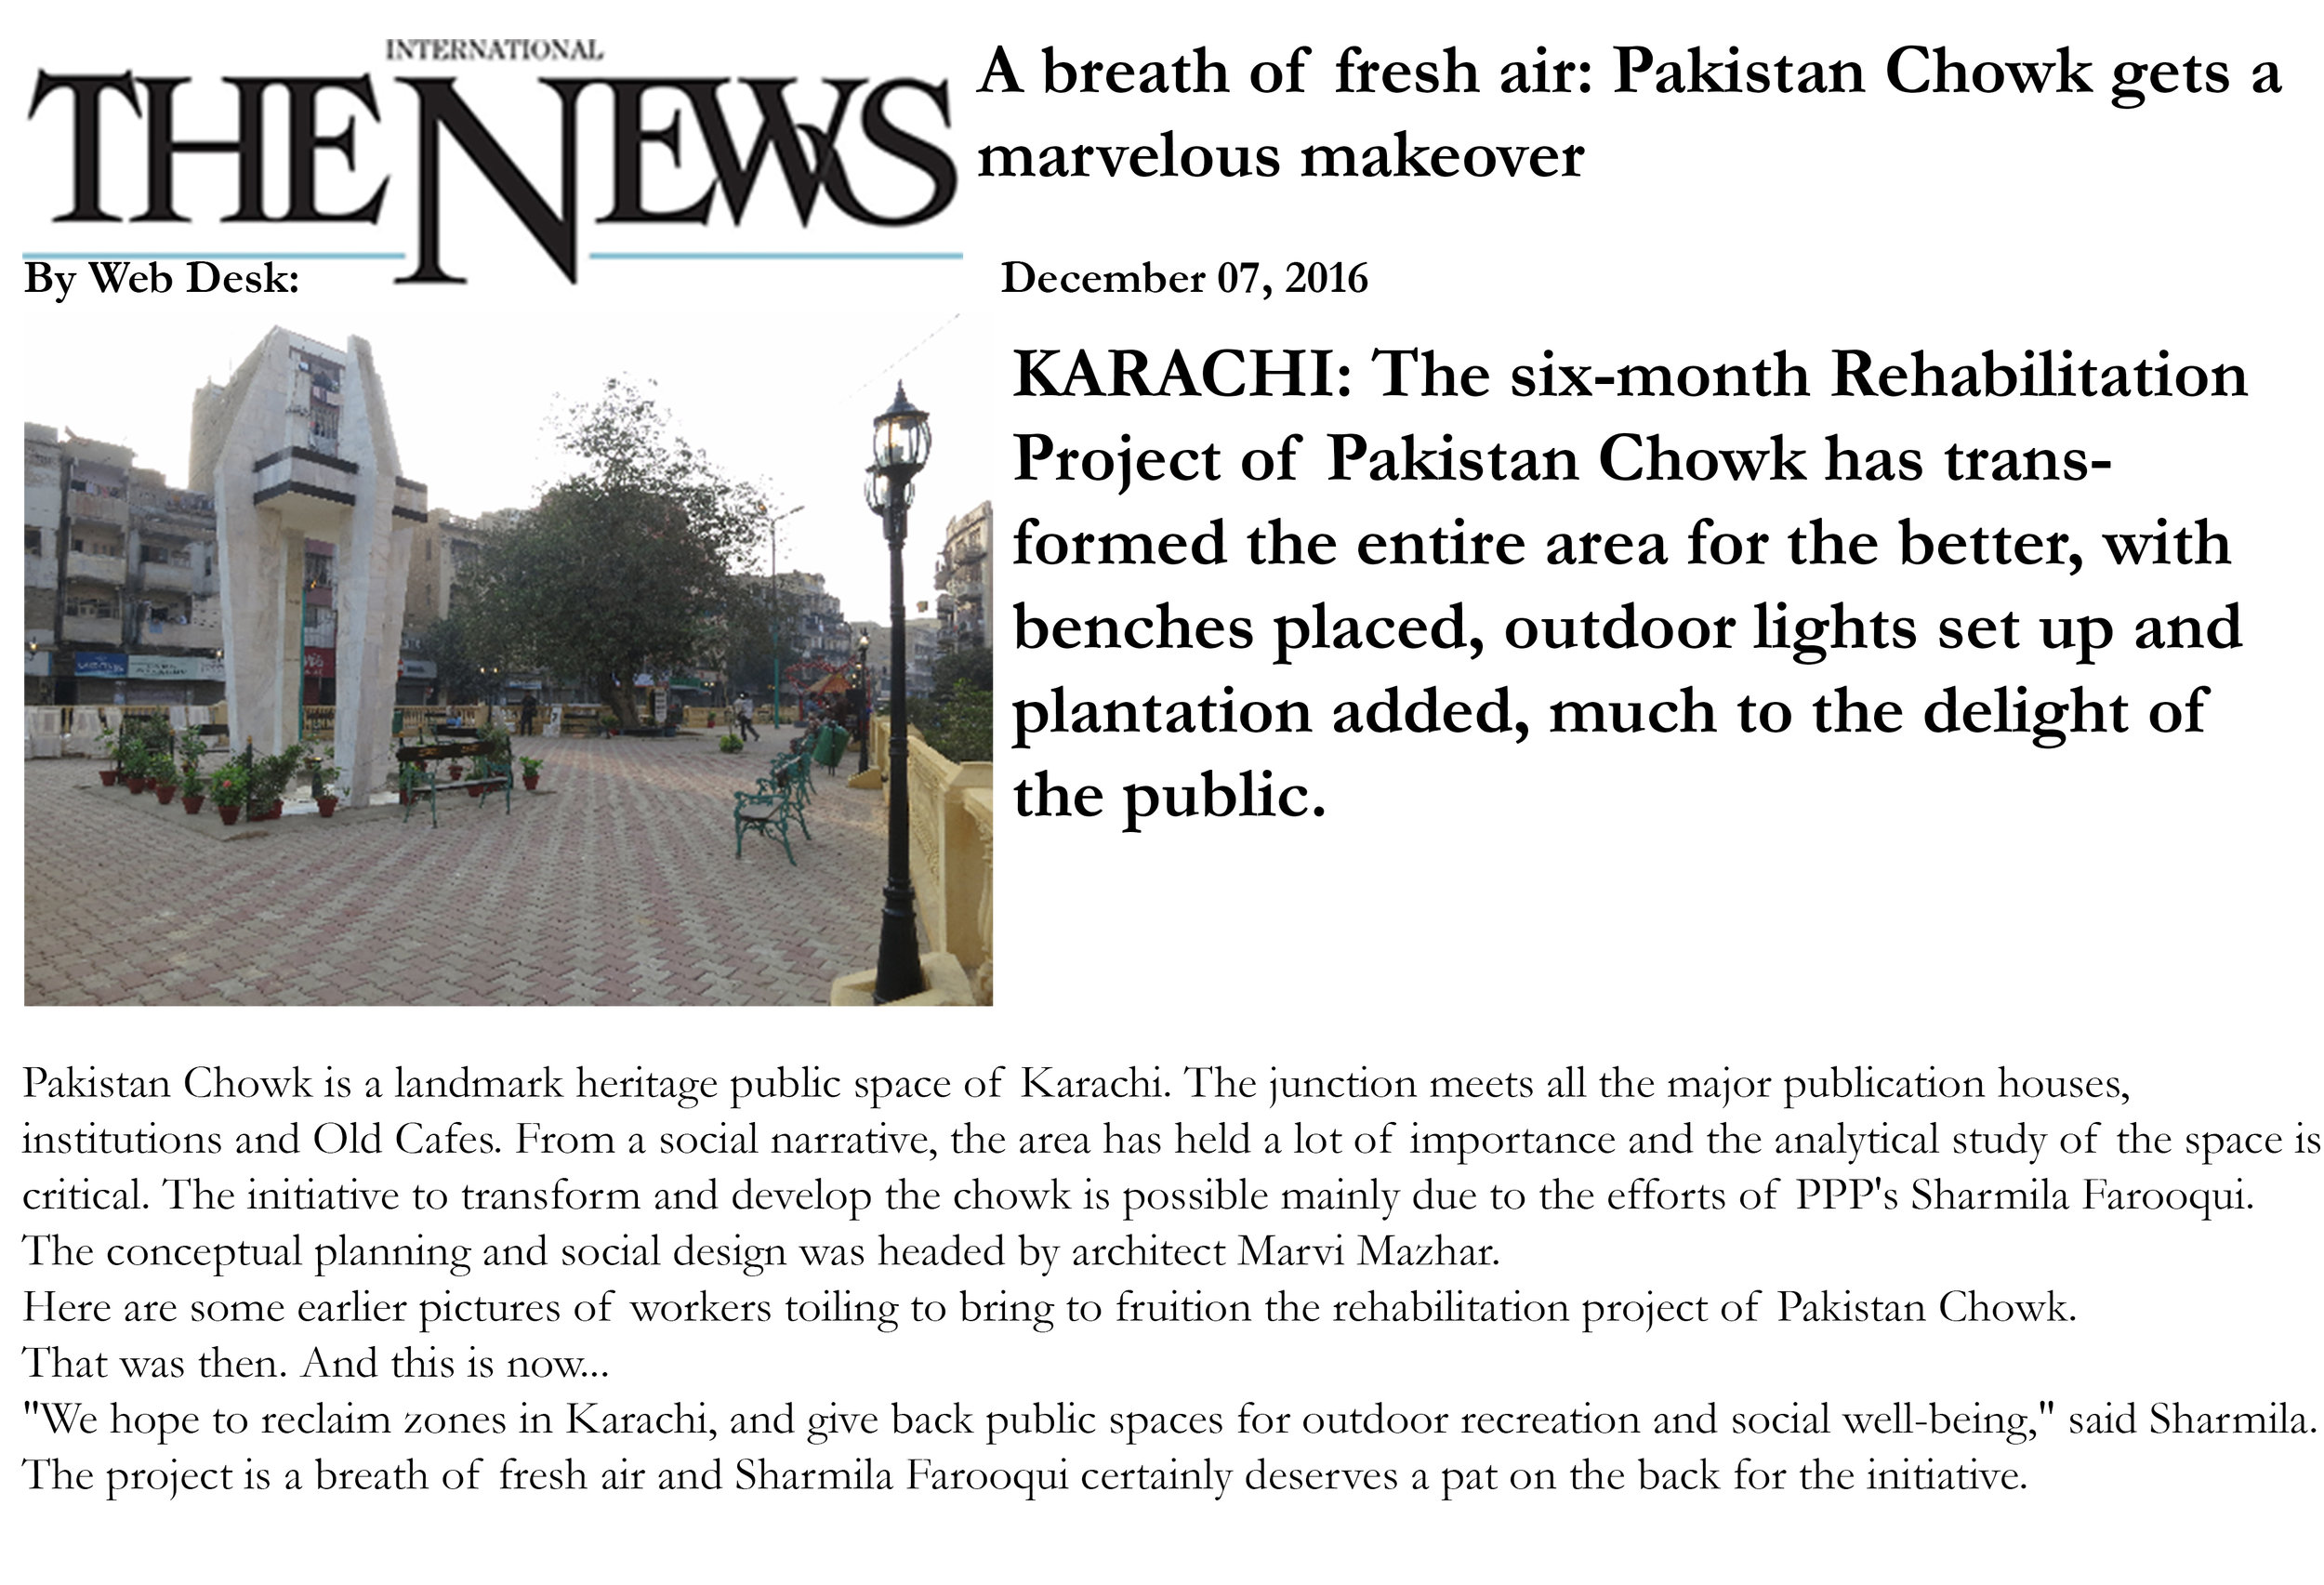 Rehabilitation of Pakistan Chowk inaugurated on 11th December, 2016. Published in International The News on 7th December, 2016.